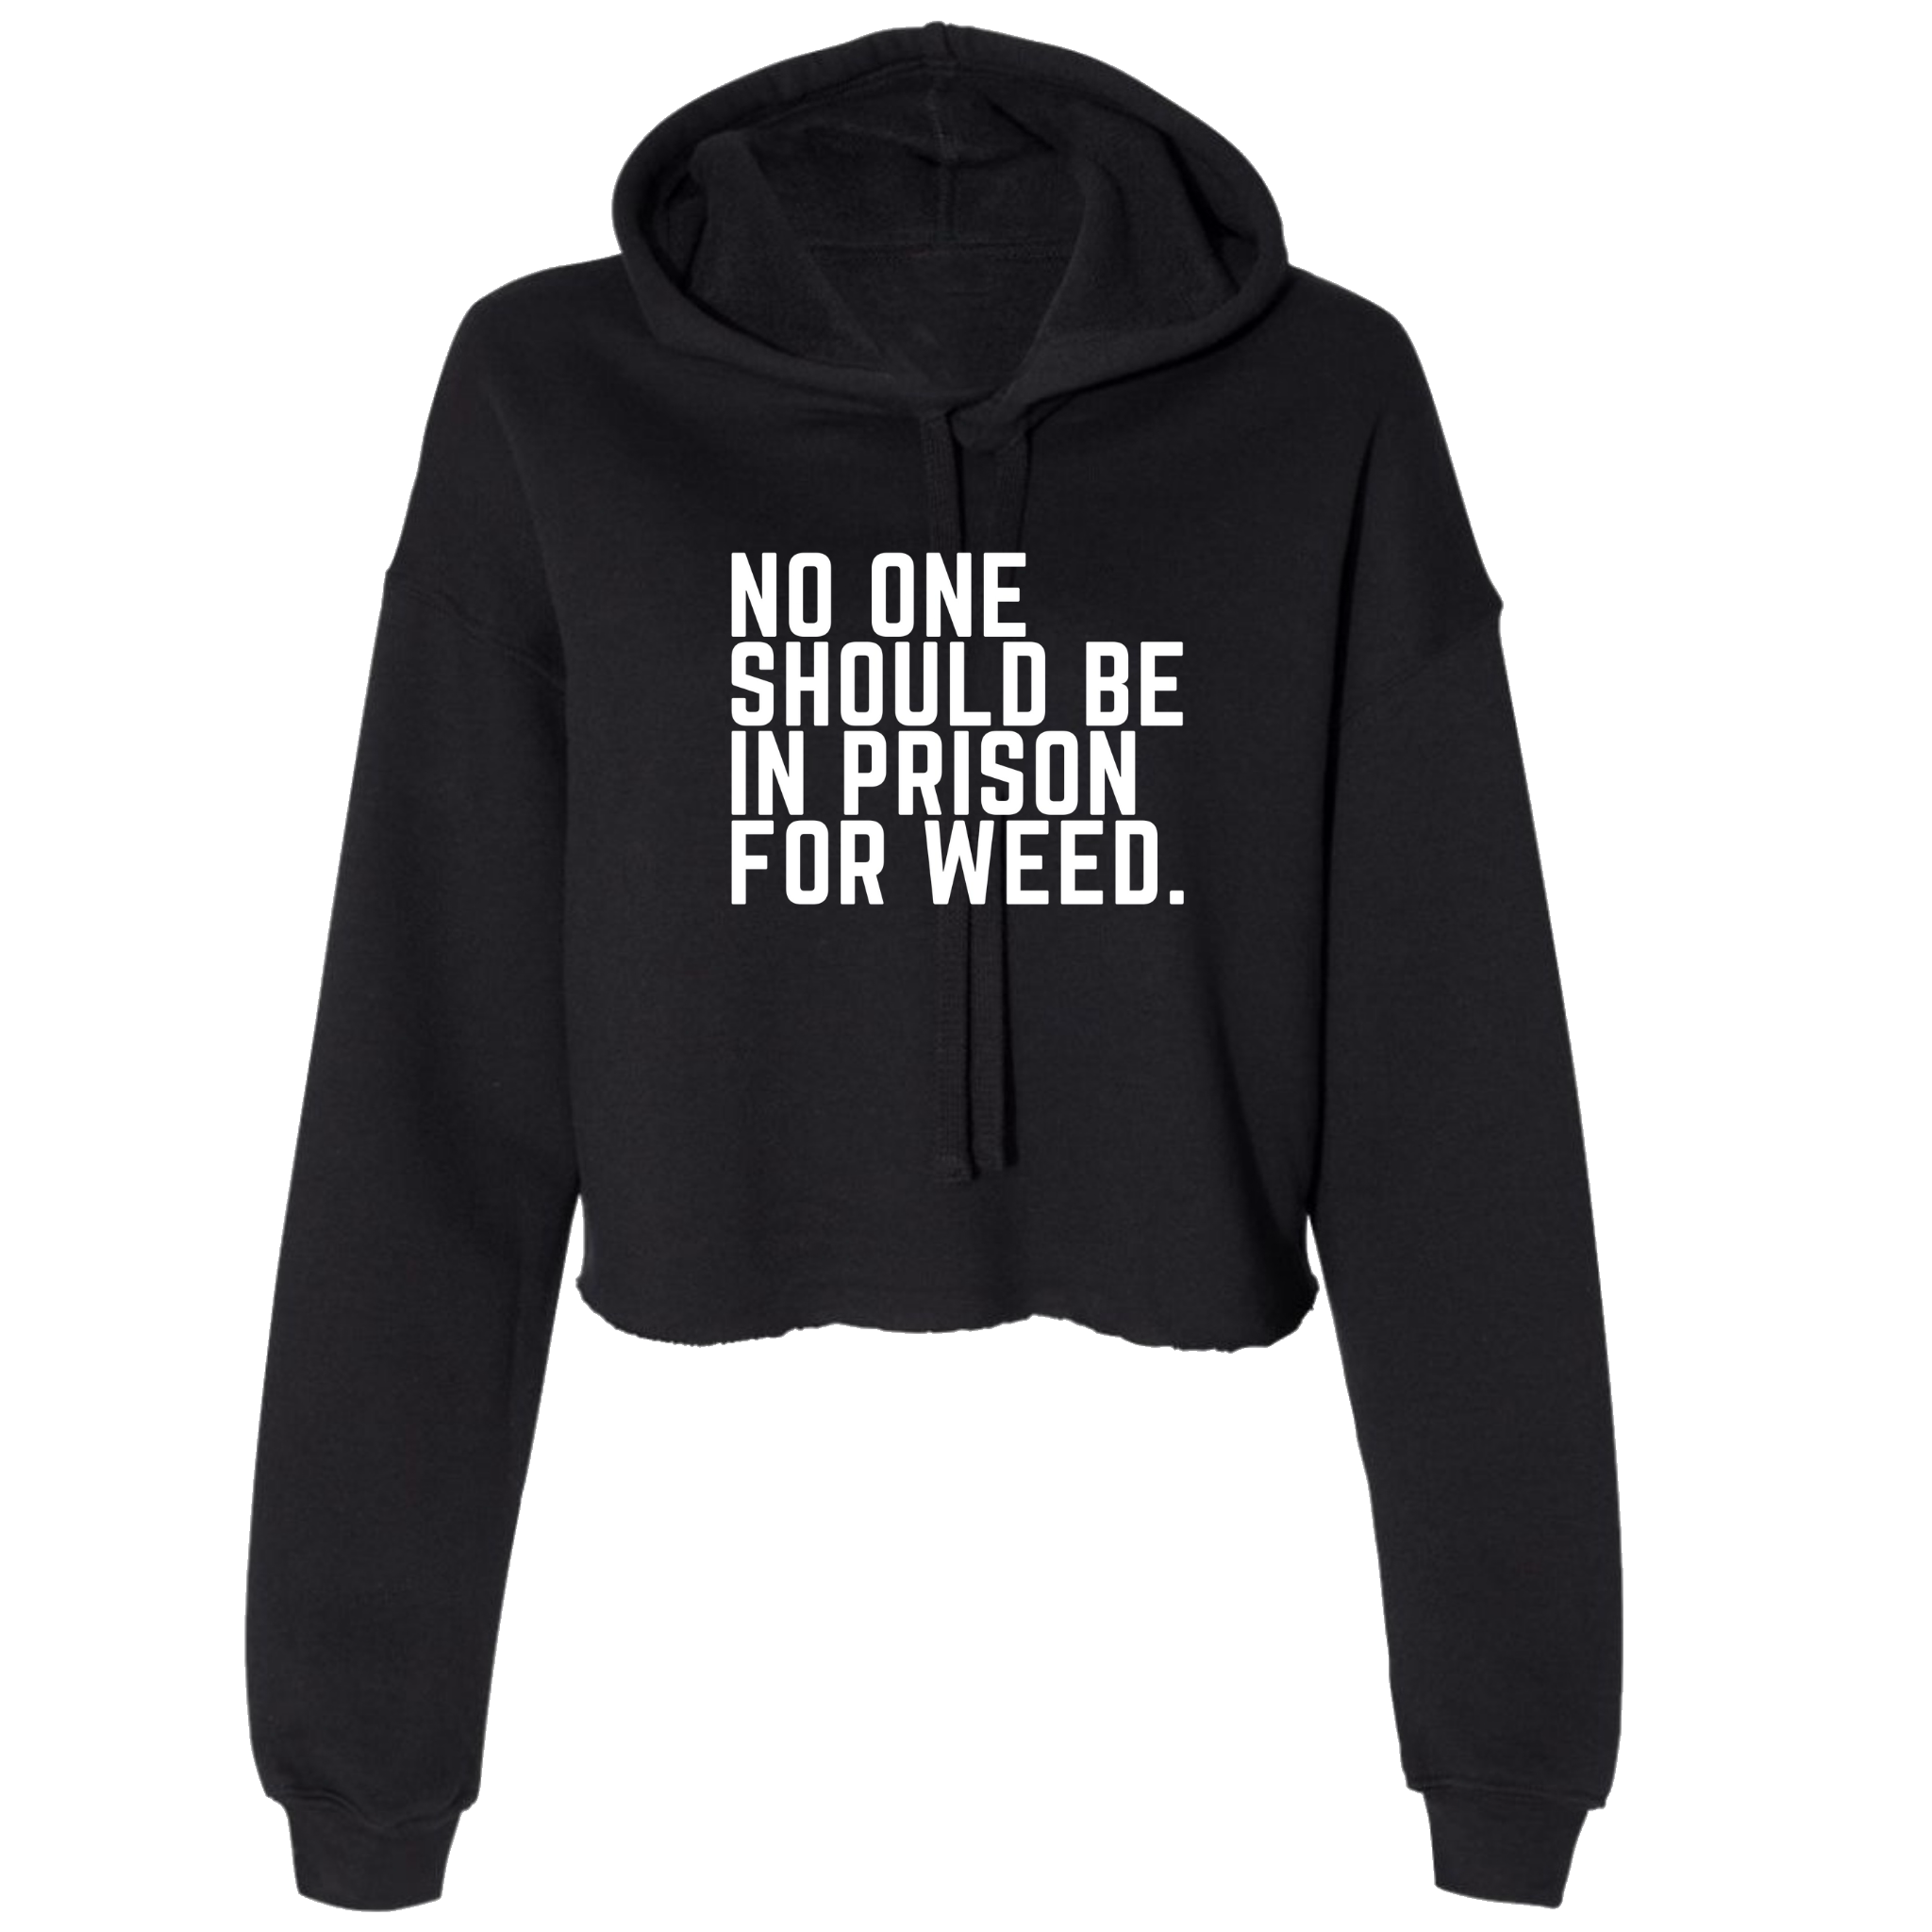 NO ONE SHOULD BE IN PRISON FOR WEED. CROPPED HOODIE